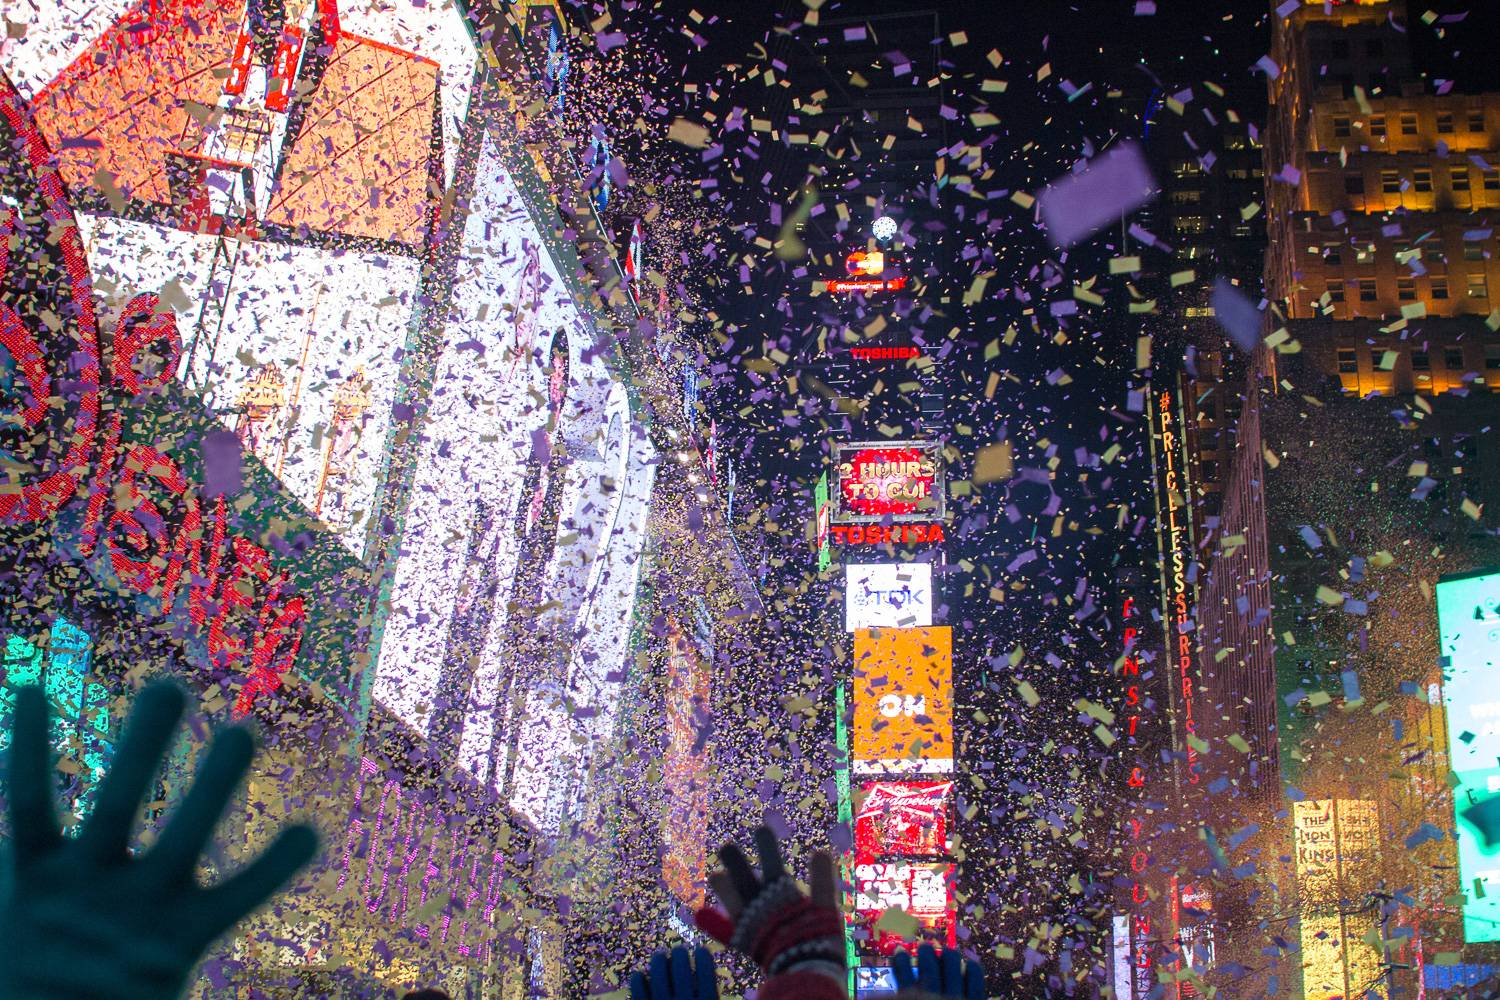 Image of confetti being thrown into the air to celebrate the New Year in Times Square